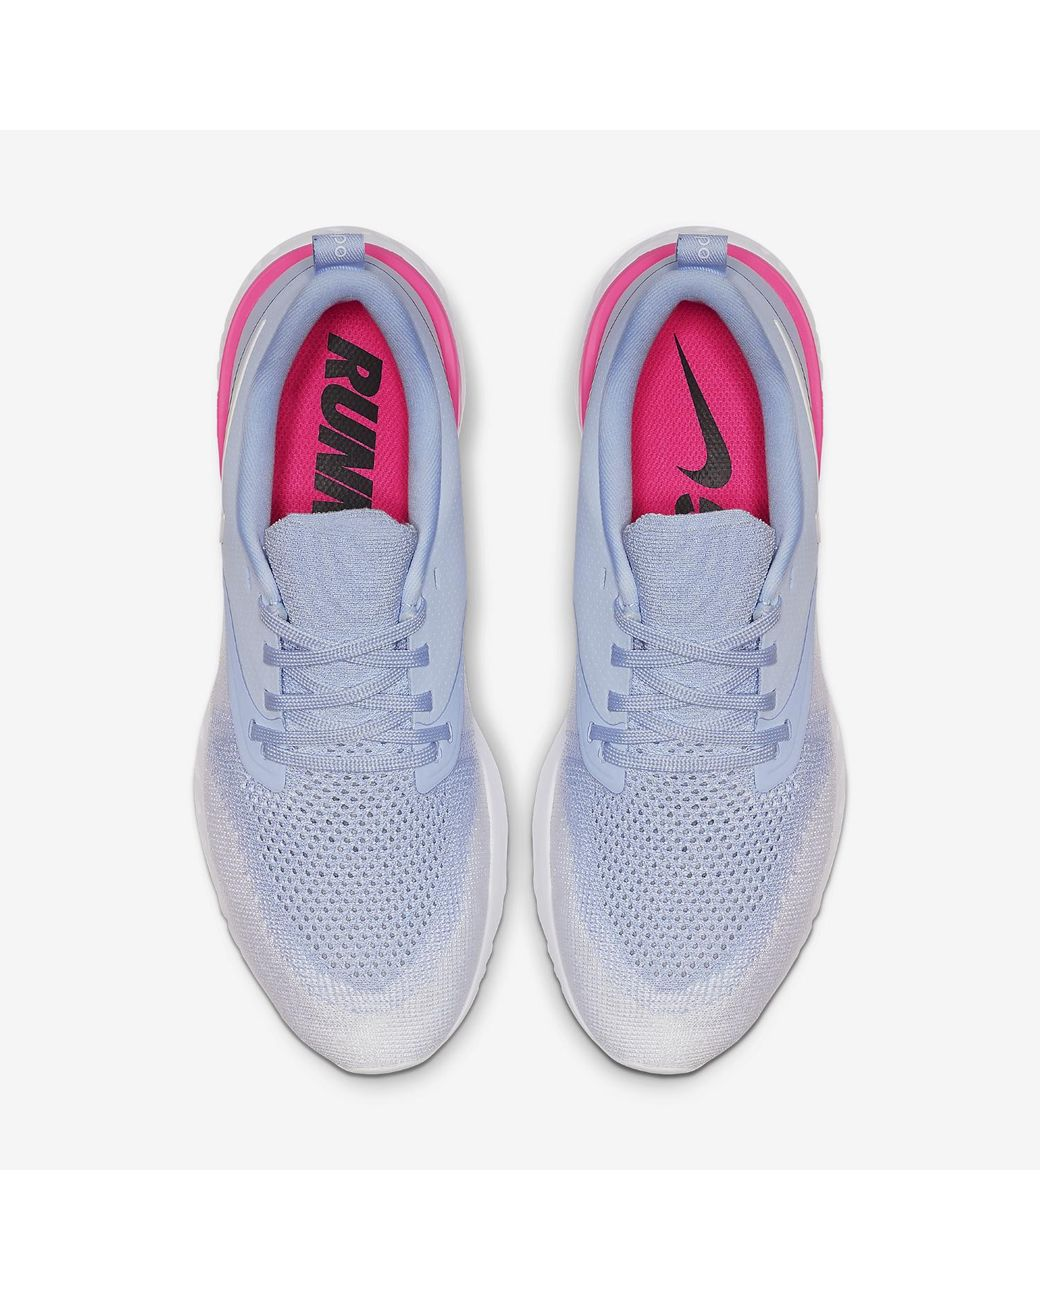 7f1f1d5e70e7 Lyst - Nike Odyssey React Flyknit 2 Running Sneakers From Finish Line in  Blue - Save 39%